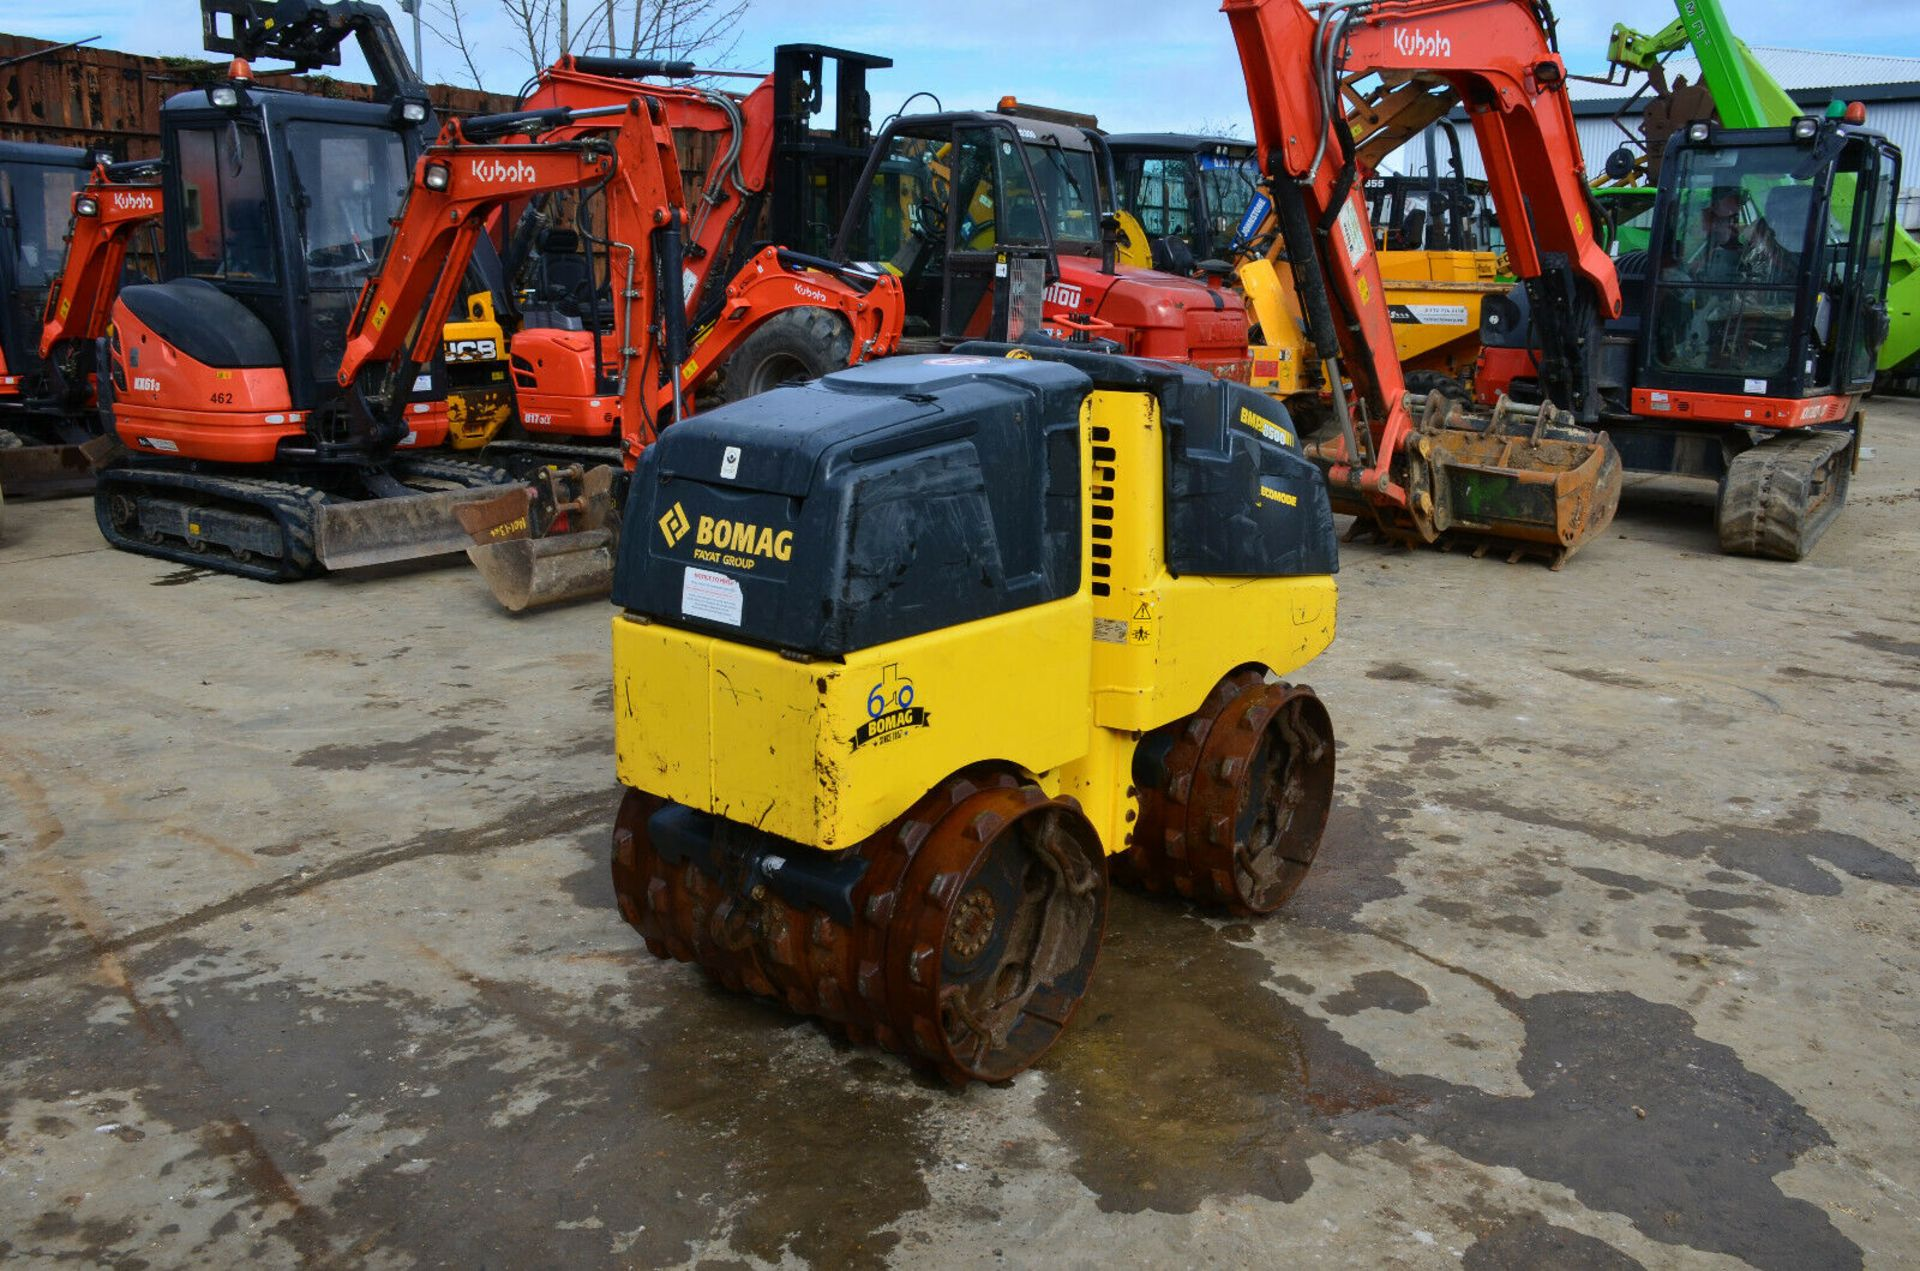 Lot 90 - Bomag BMP 8500 Multi-Purpose Compactor